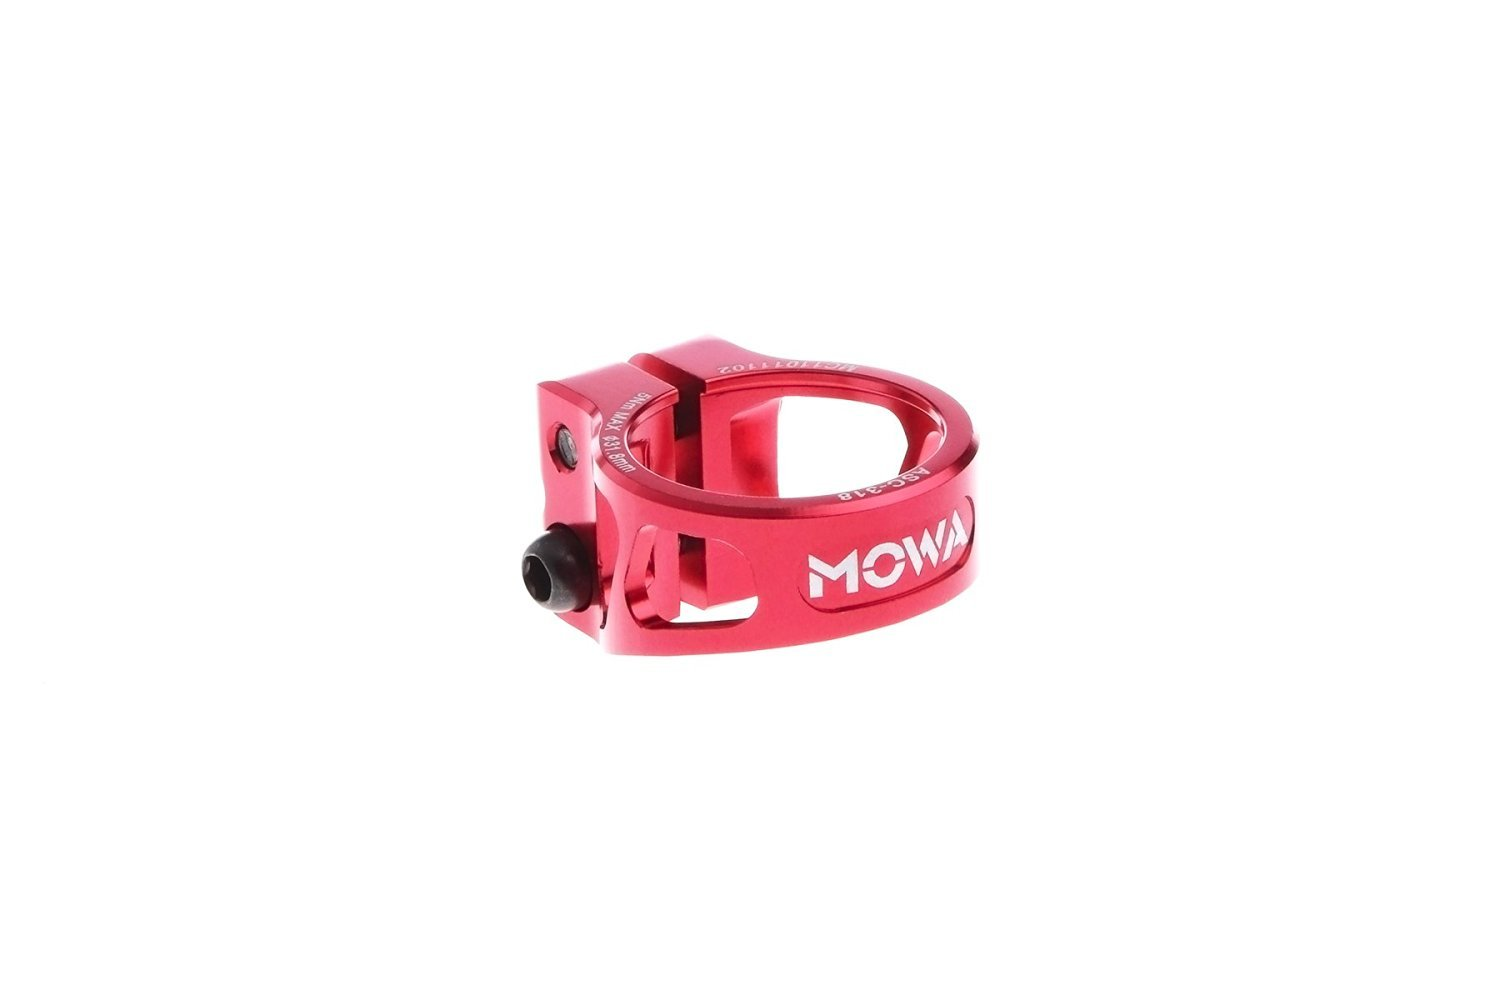 MOWA ASC Road Cyclocross CX Mountain Bicycle MTB Bike Cycling Alloy Seatpost Clamp 31.8 and 34.9 (Red, 31.8mm) by MOWA